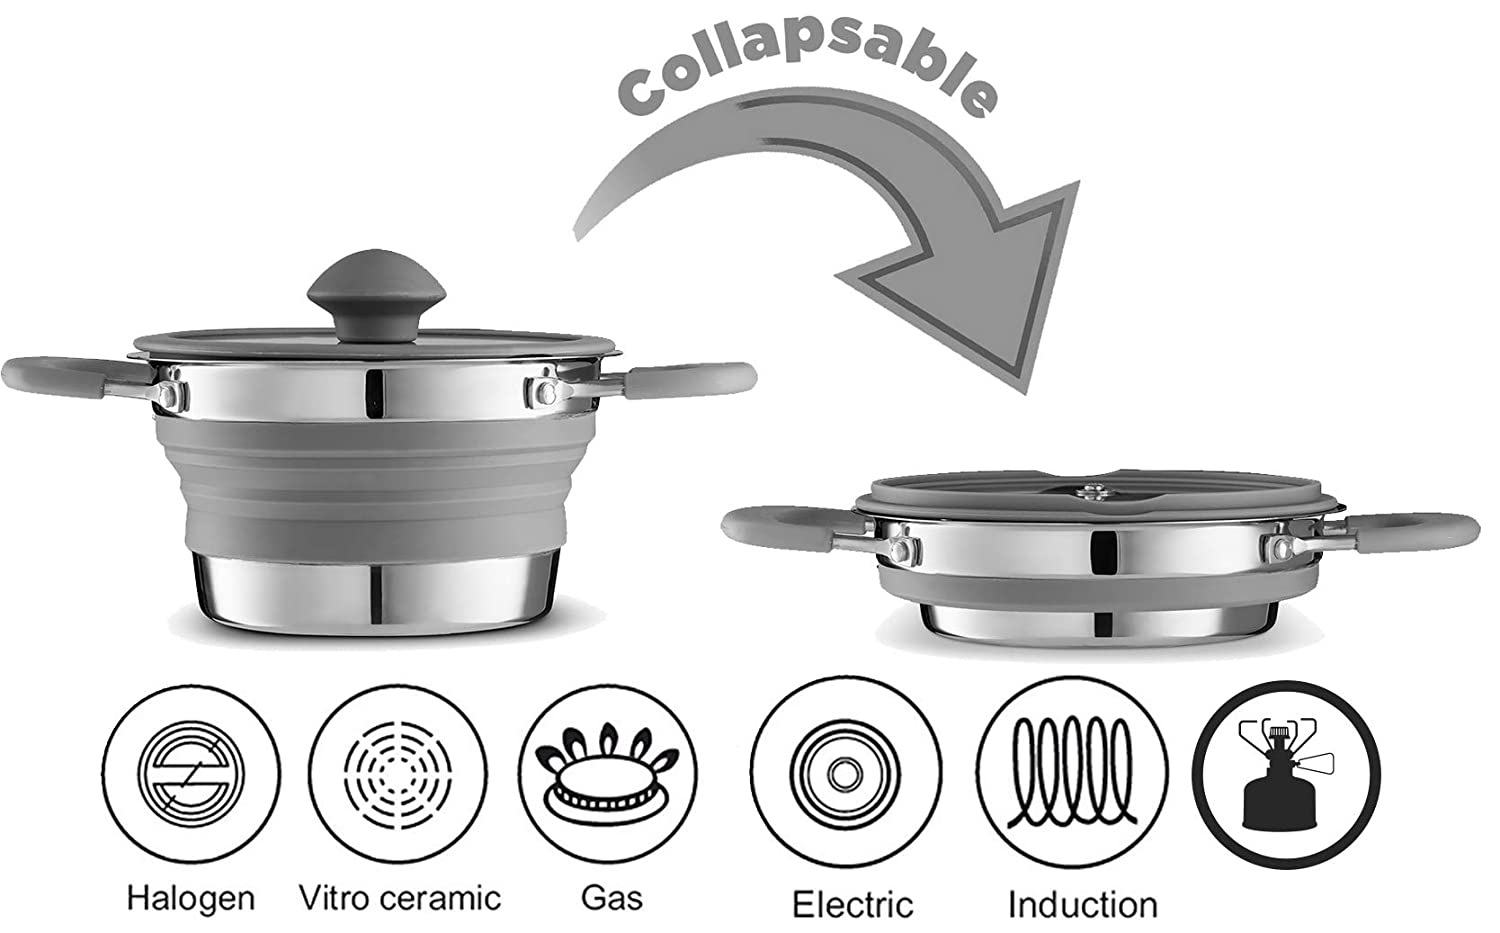 Gourmia GCP9935 Collapsible Pot – Stainless Steel, Silicone and Glass Lid – for Gas and Electric Stove Cooking – Great for Outdoors, Hiking, Camping, Traveling - BPA Free